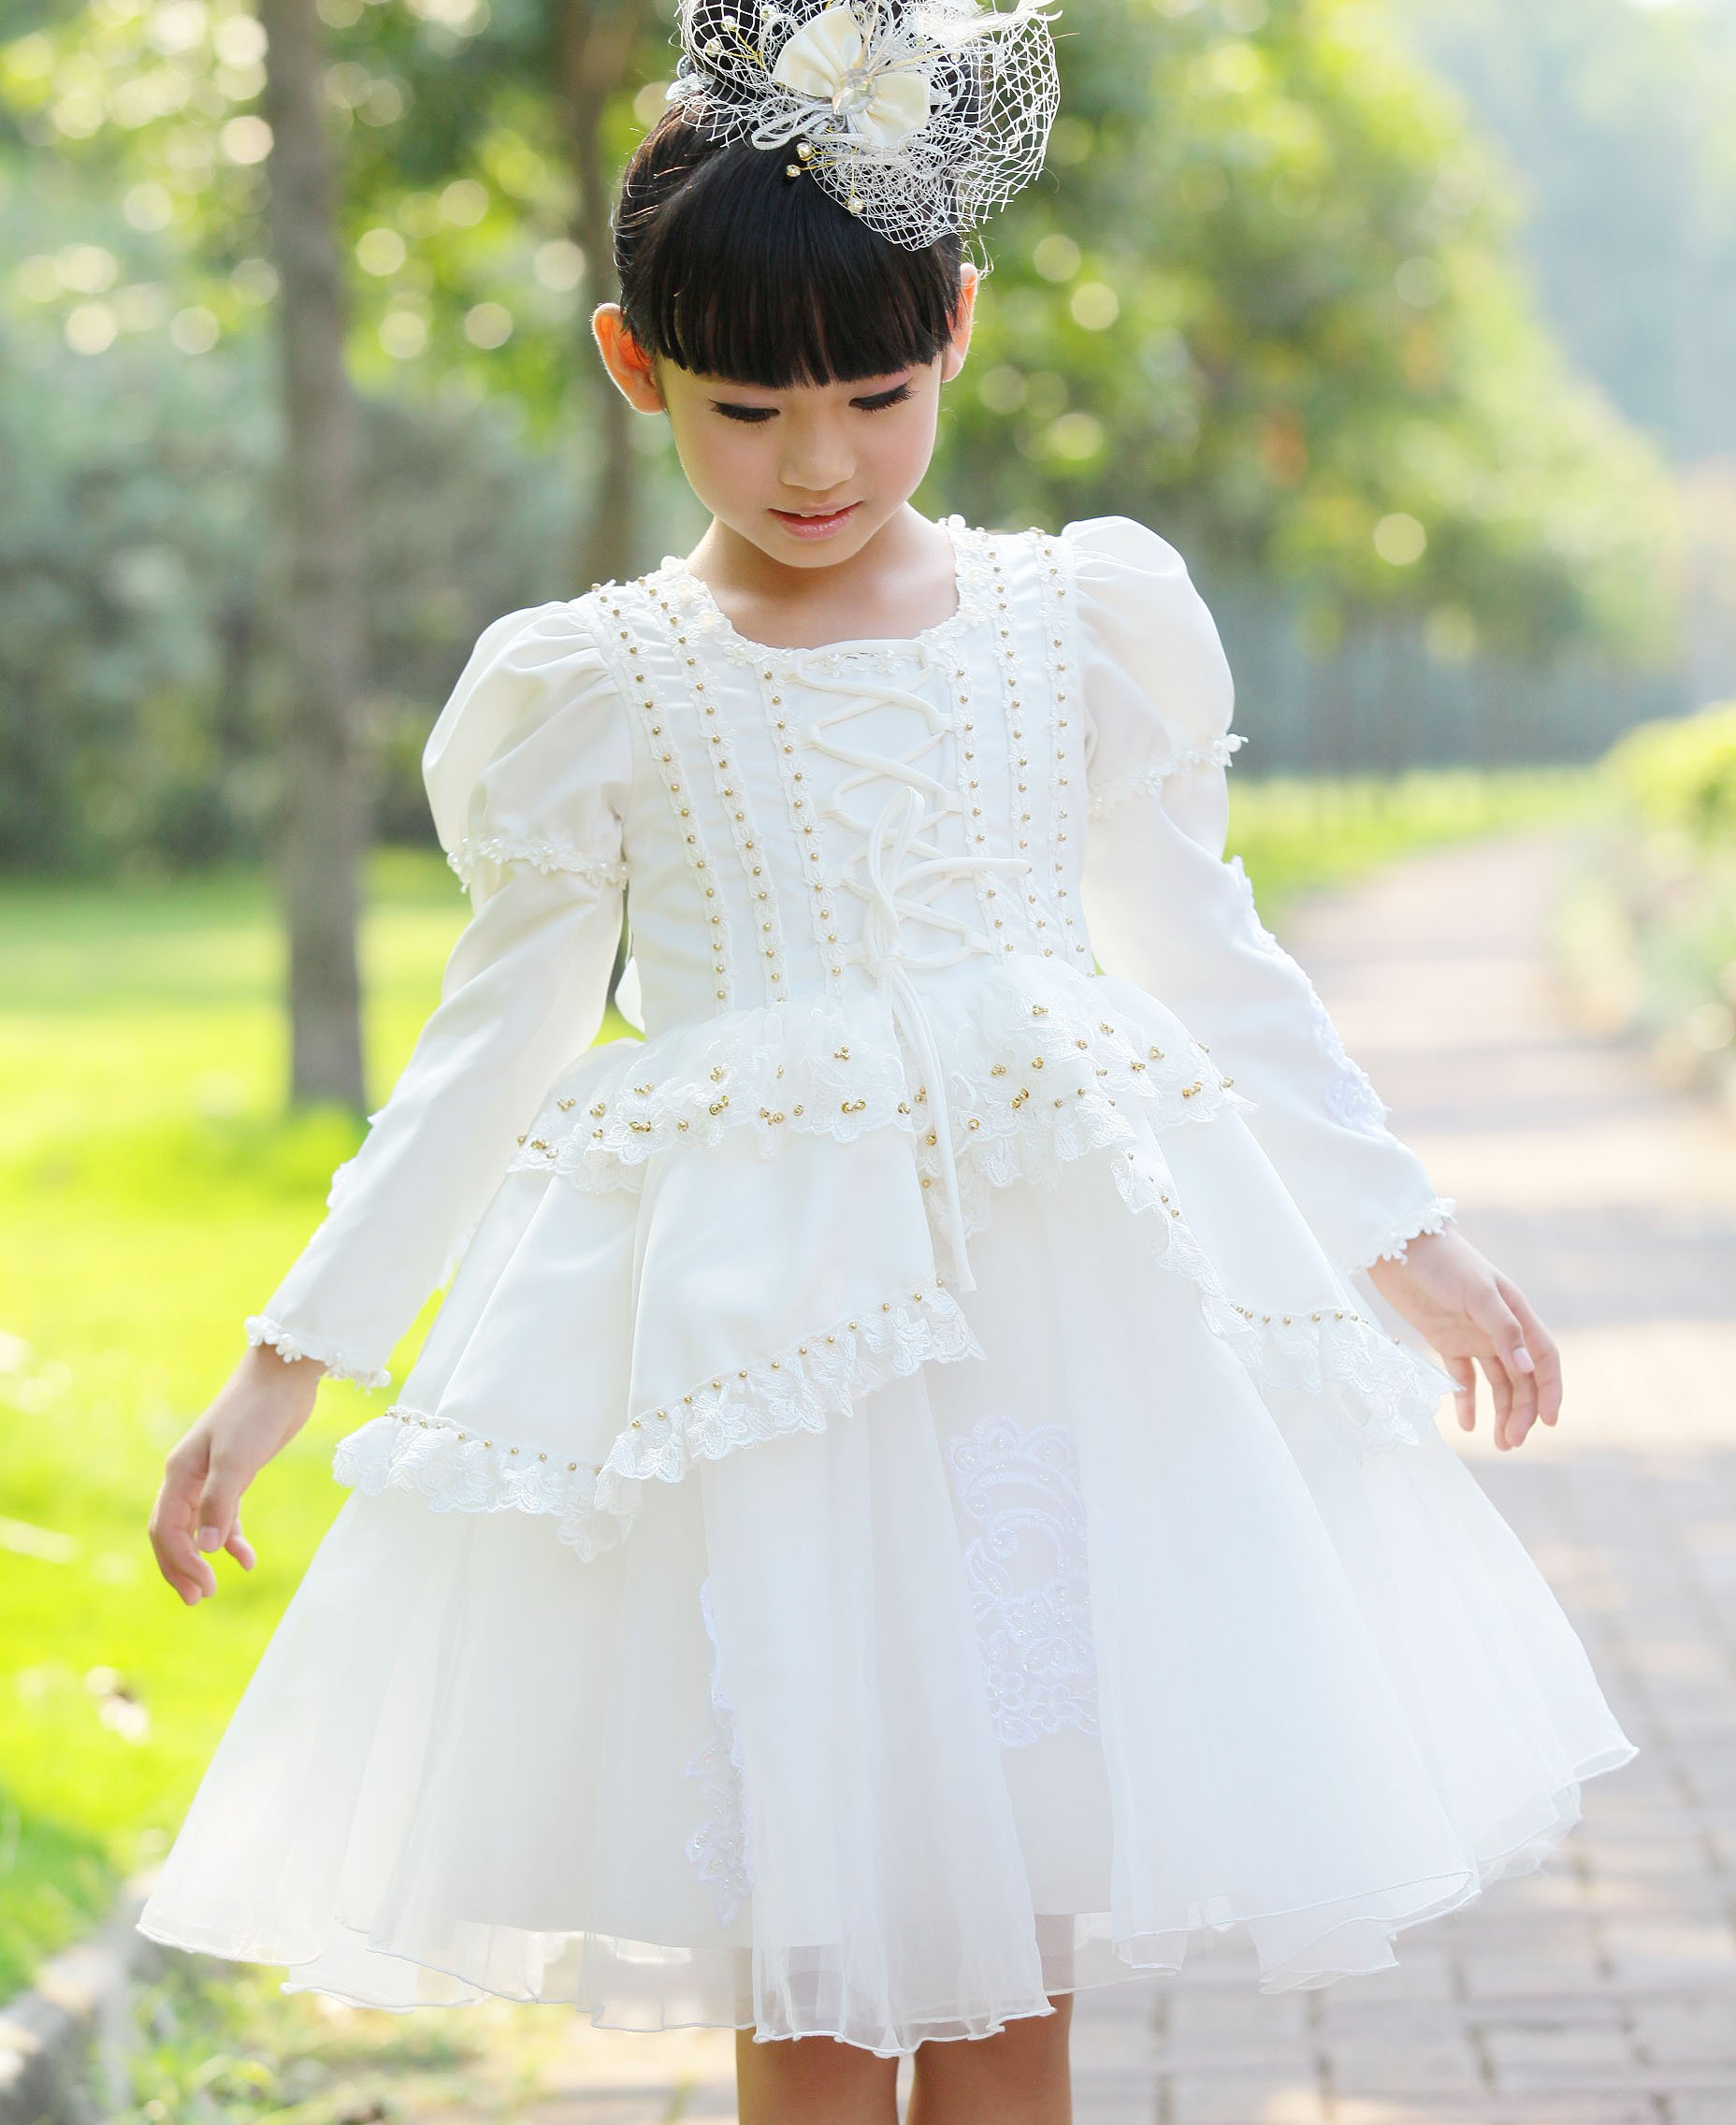 Cute wedding dresses for girls wedding and bridal for Wedding dress for girls